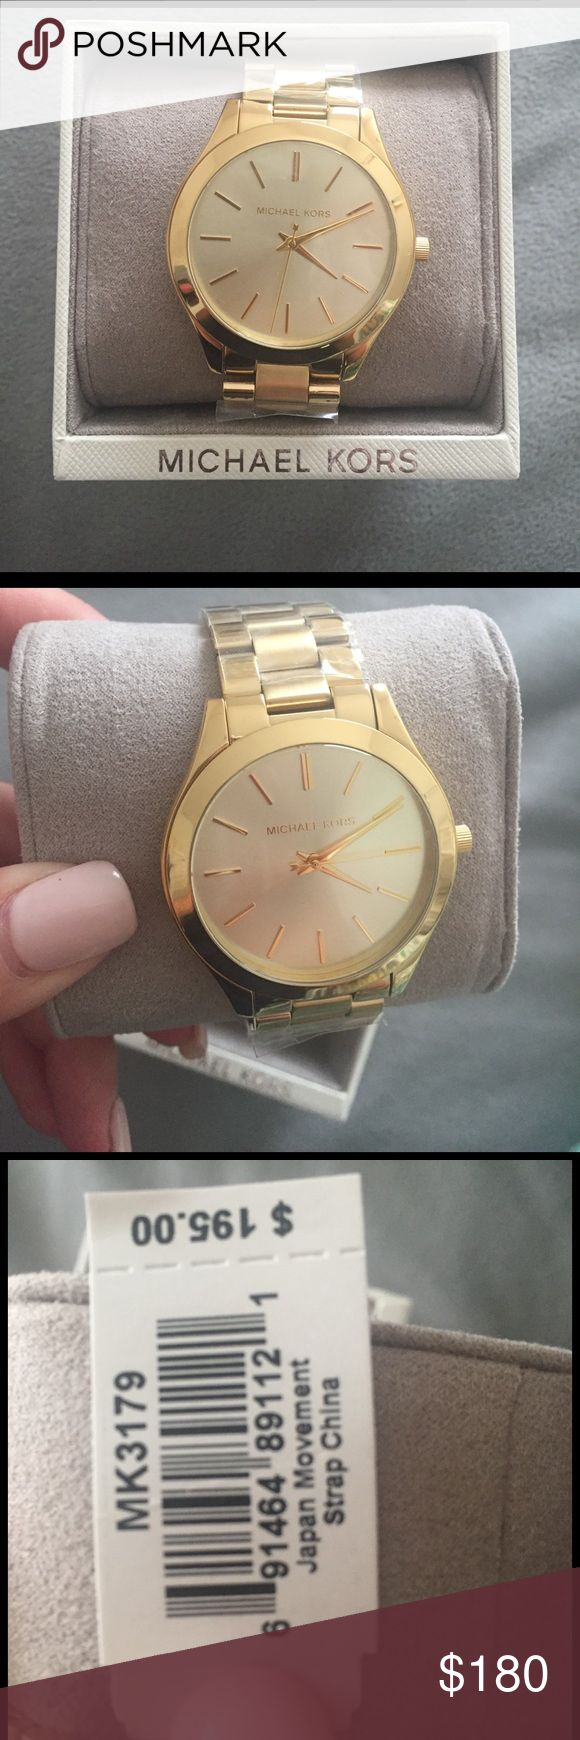 designer watches for women michael kors ddgw  Gold Michael Kors Watch Brand new, with tags, never warn Gold Michael Kors  watch